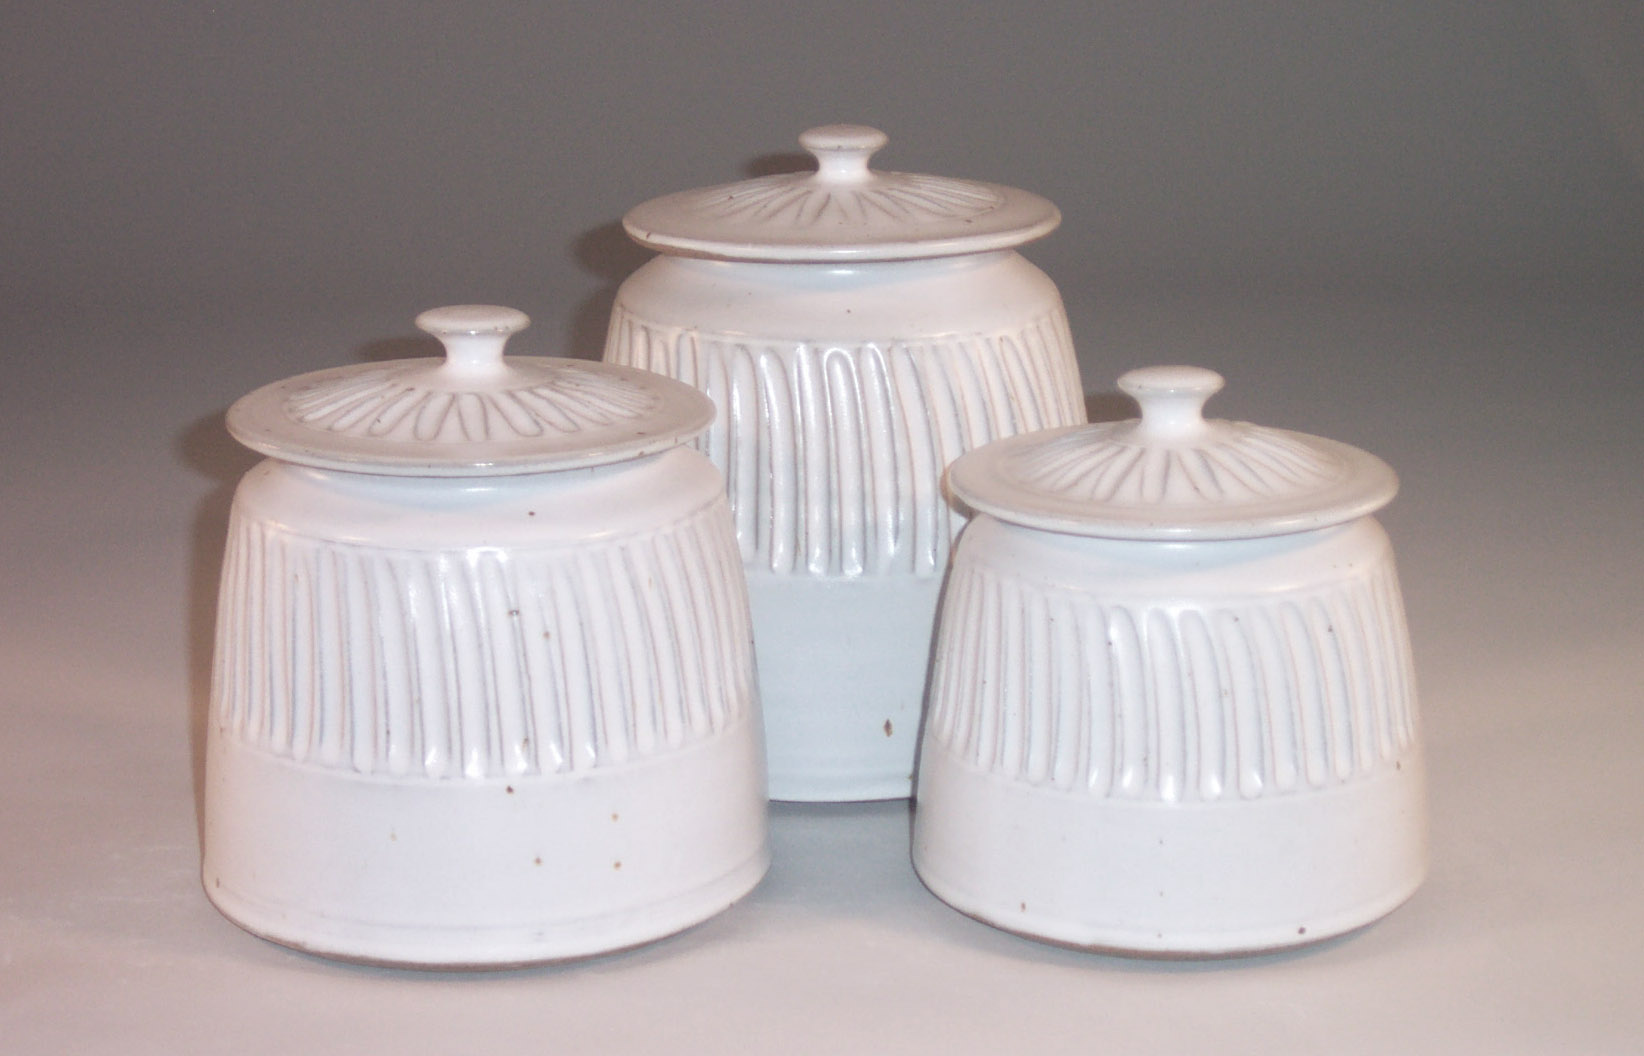 Cannister 3-pc Set with Lids, Fluted Design in White Glaze